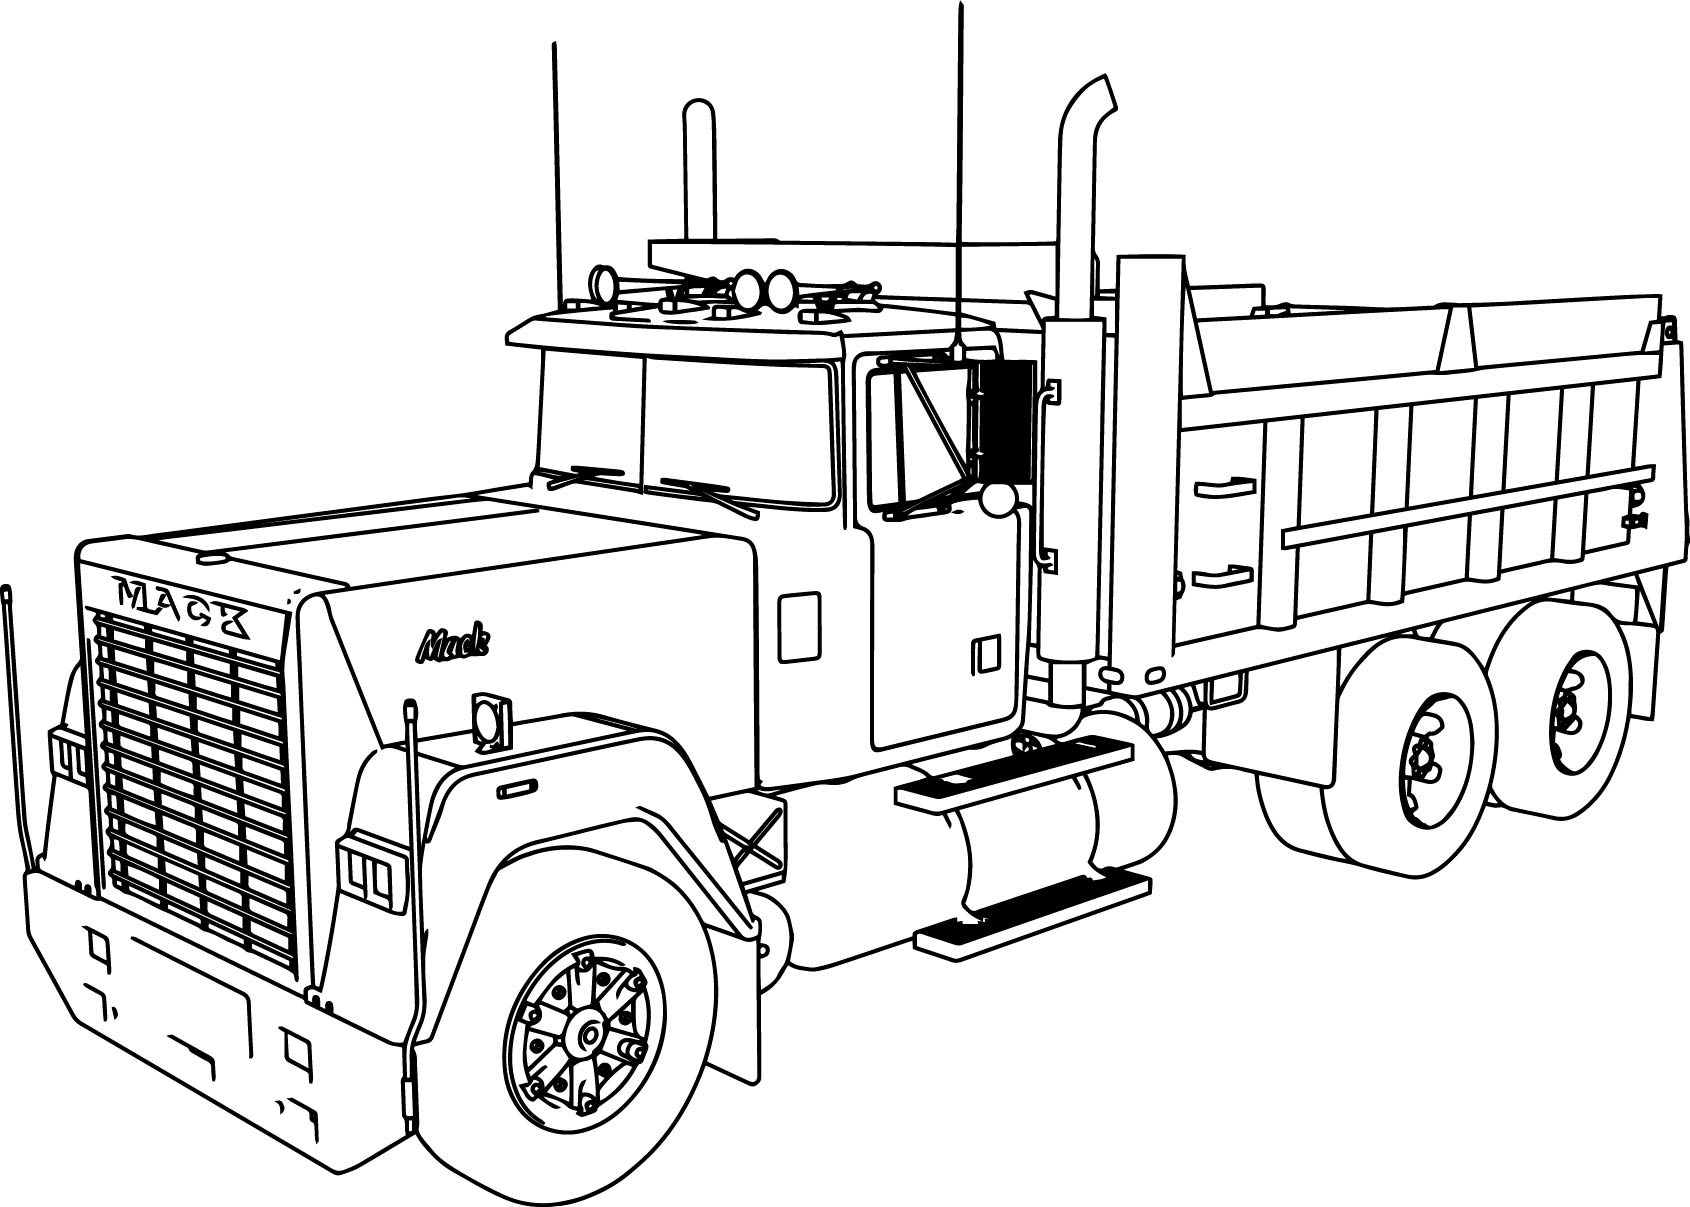 Mack dumper truck coloring page for Big trucks coloring pages